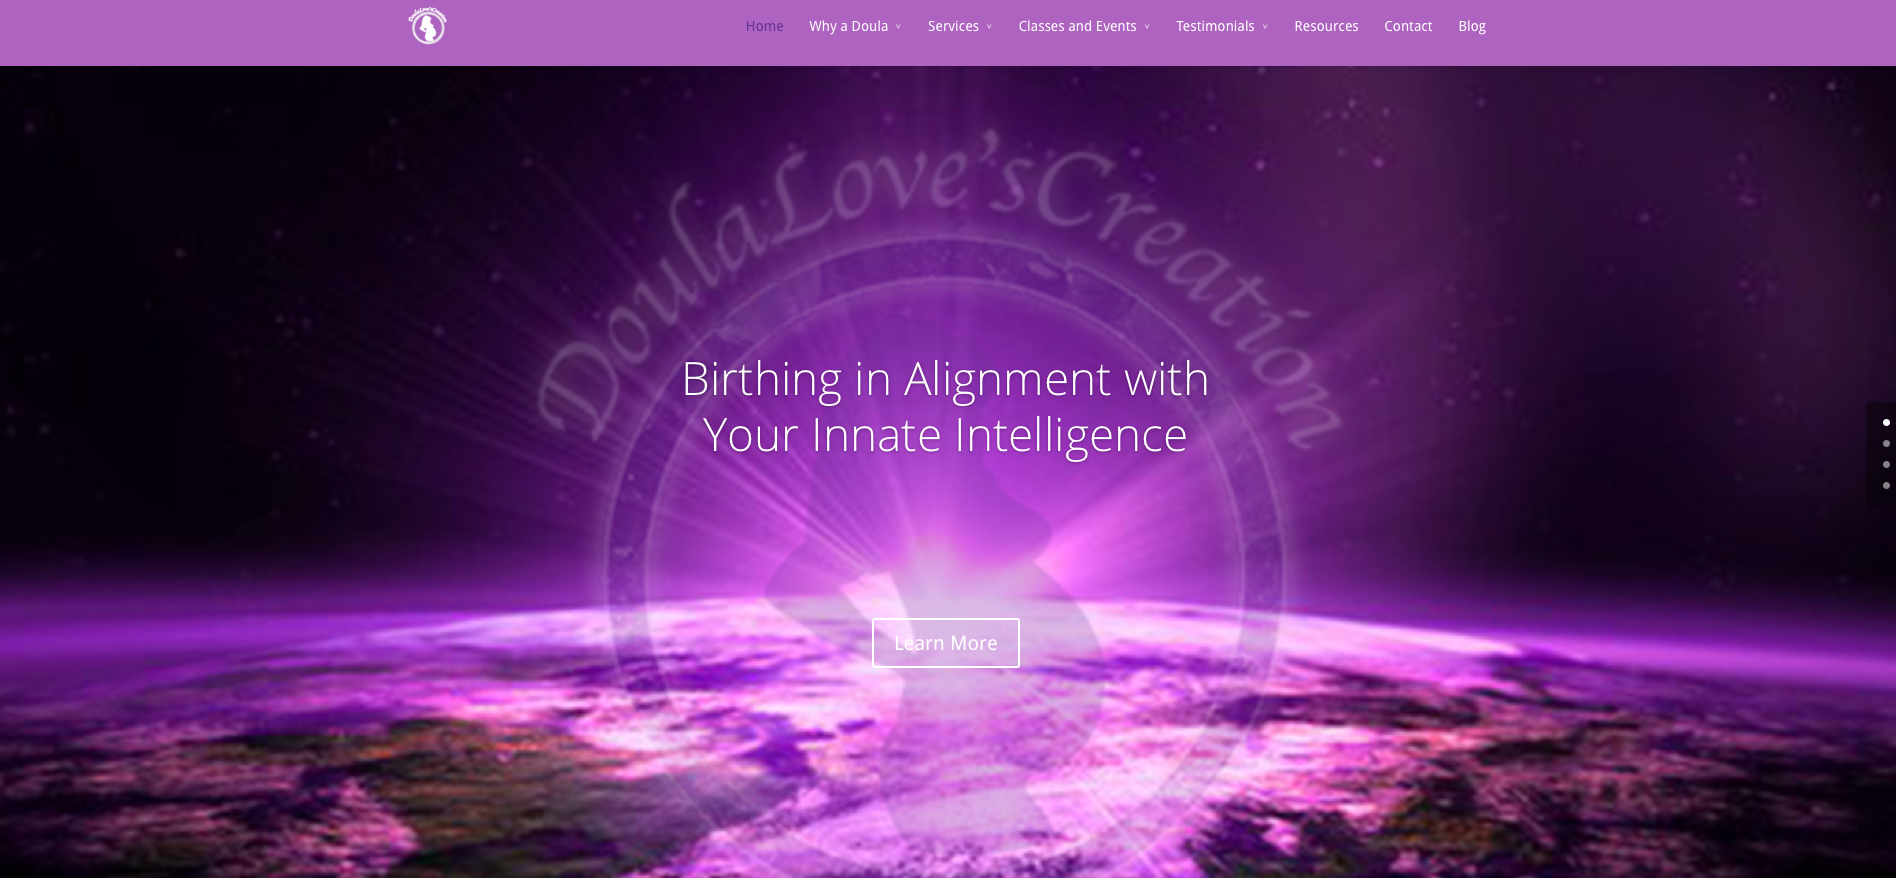 Modern Design Makeover and Strategic Marketing for DoulaLovesCreation